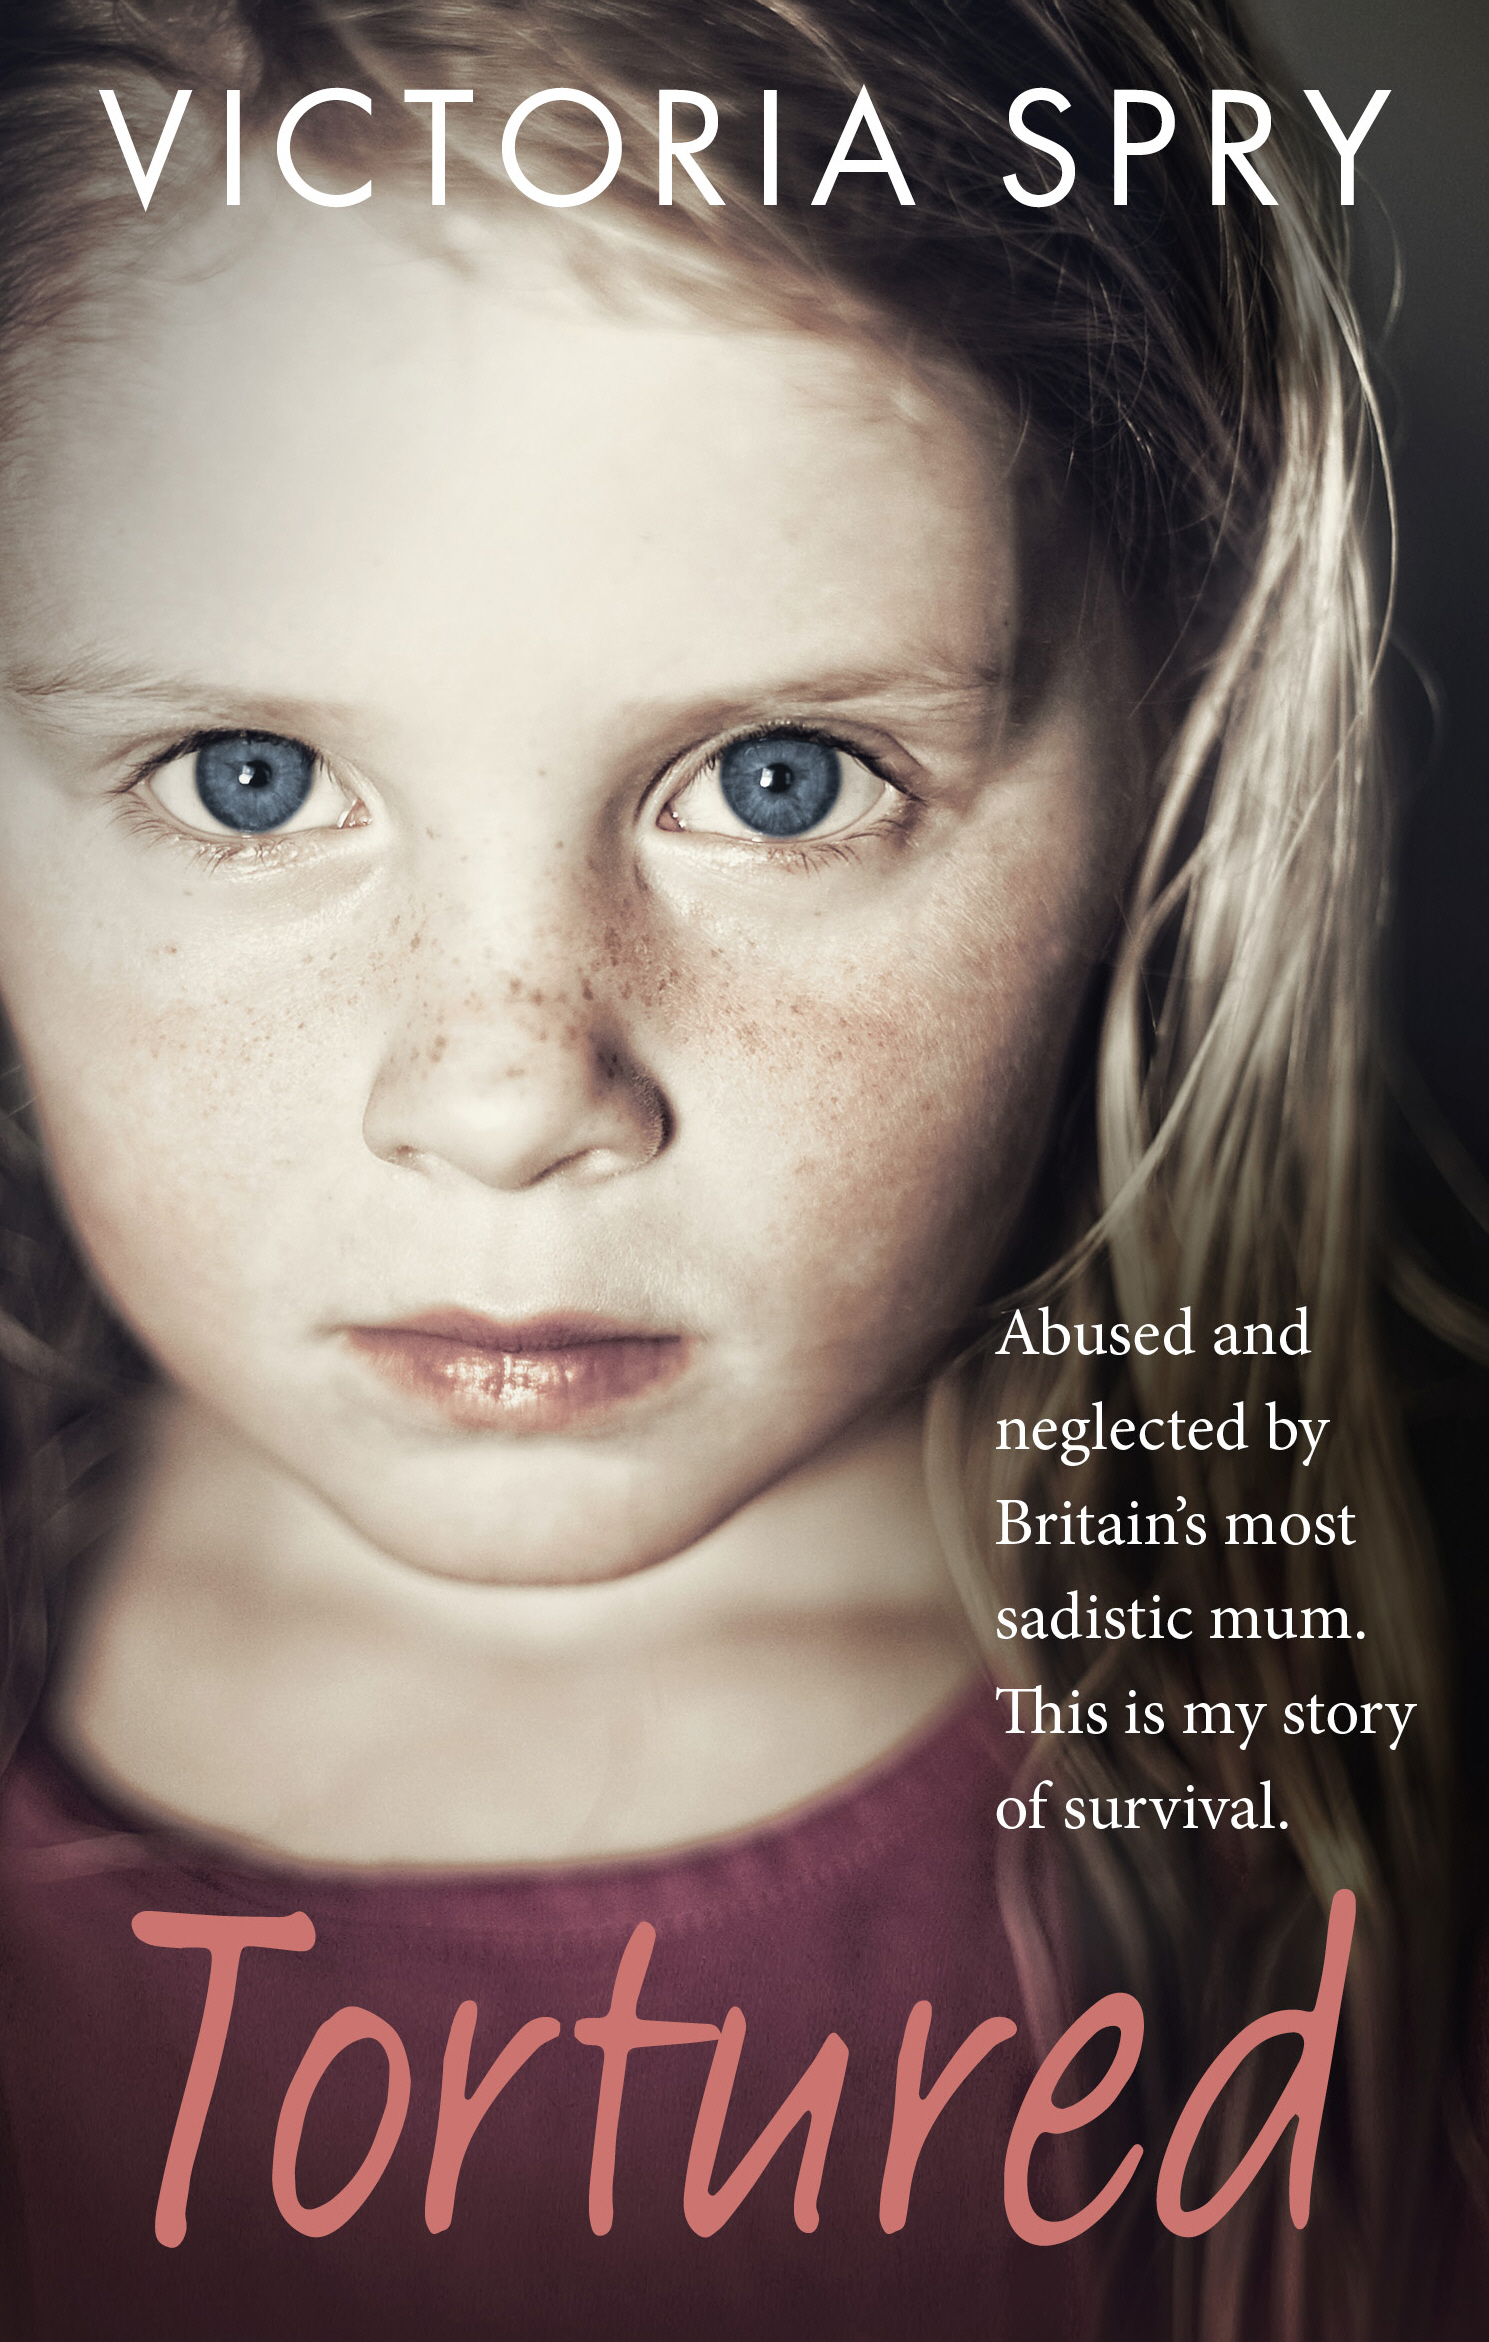 Tortured Abused and neglected by Britain?s most sadistic mum. This is my story of survival.